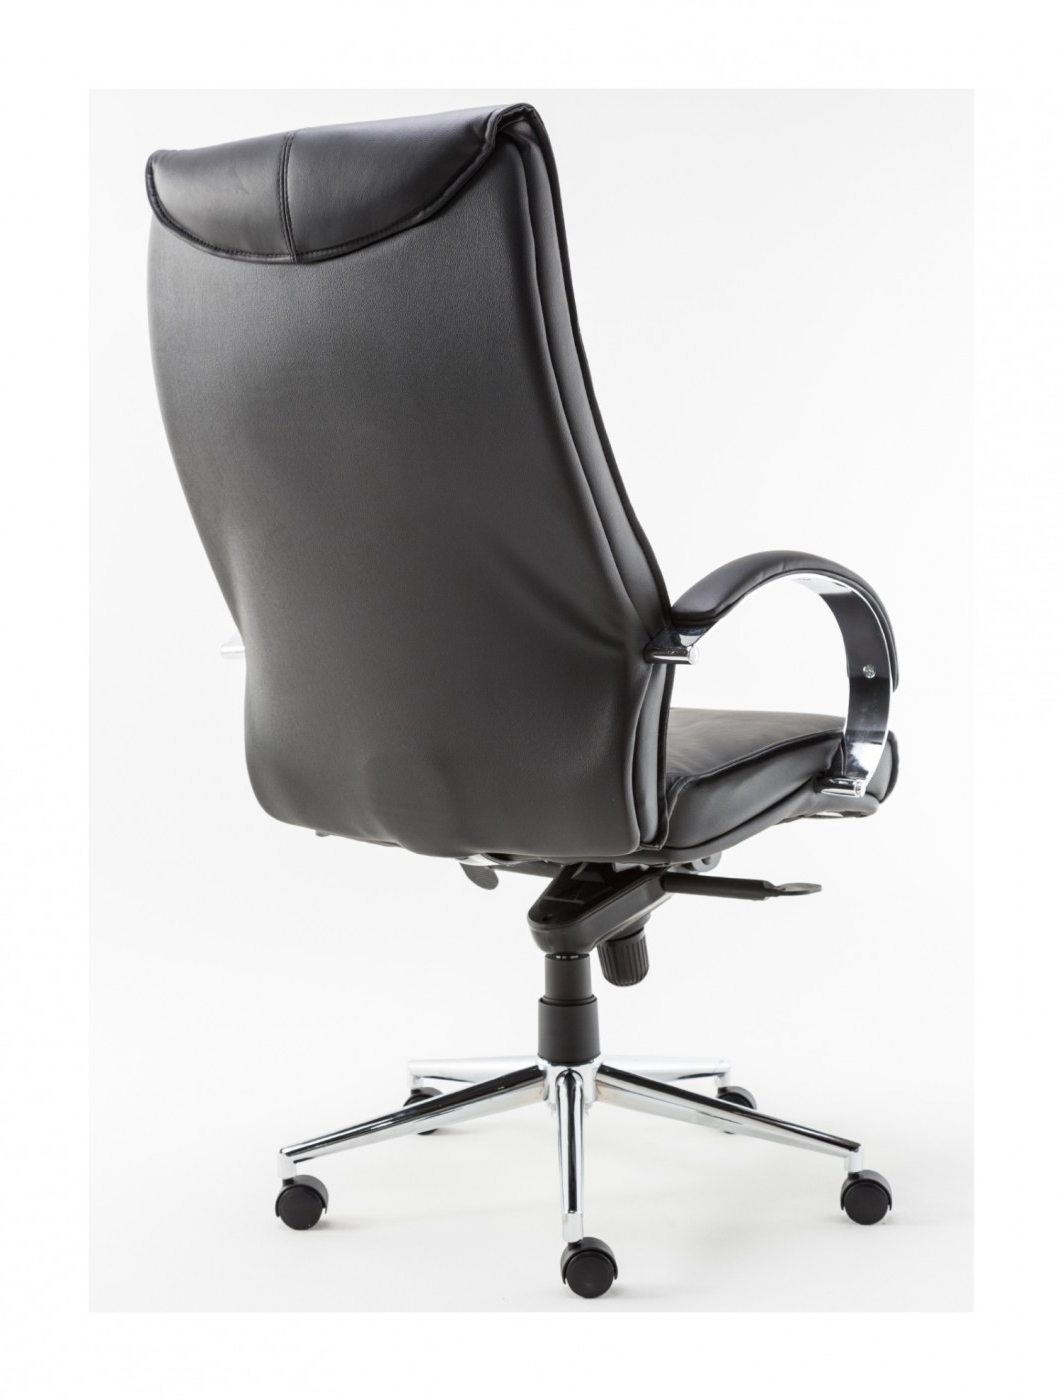 121 Office Throughout Verona Cream Executive Leather Office Chairs (View 11 of 20)